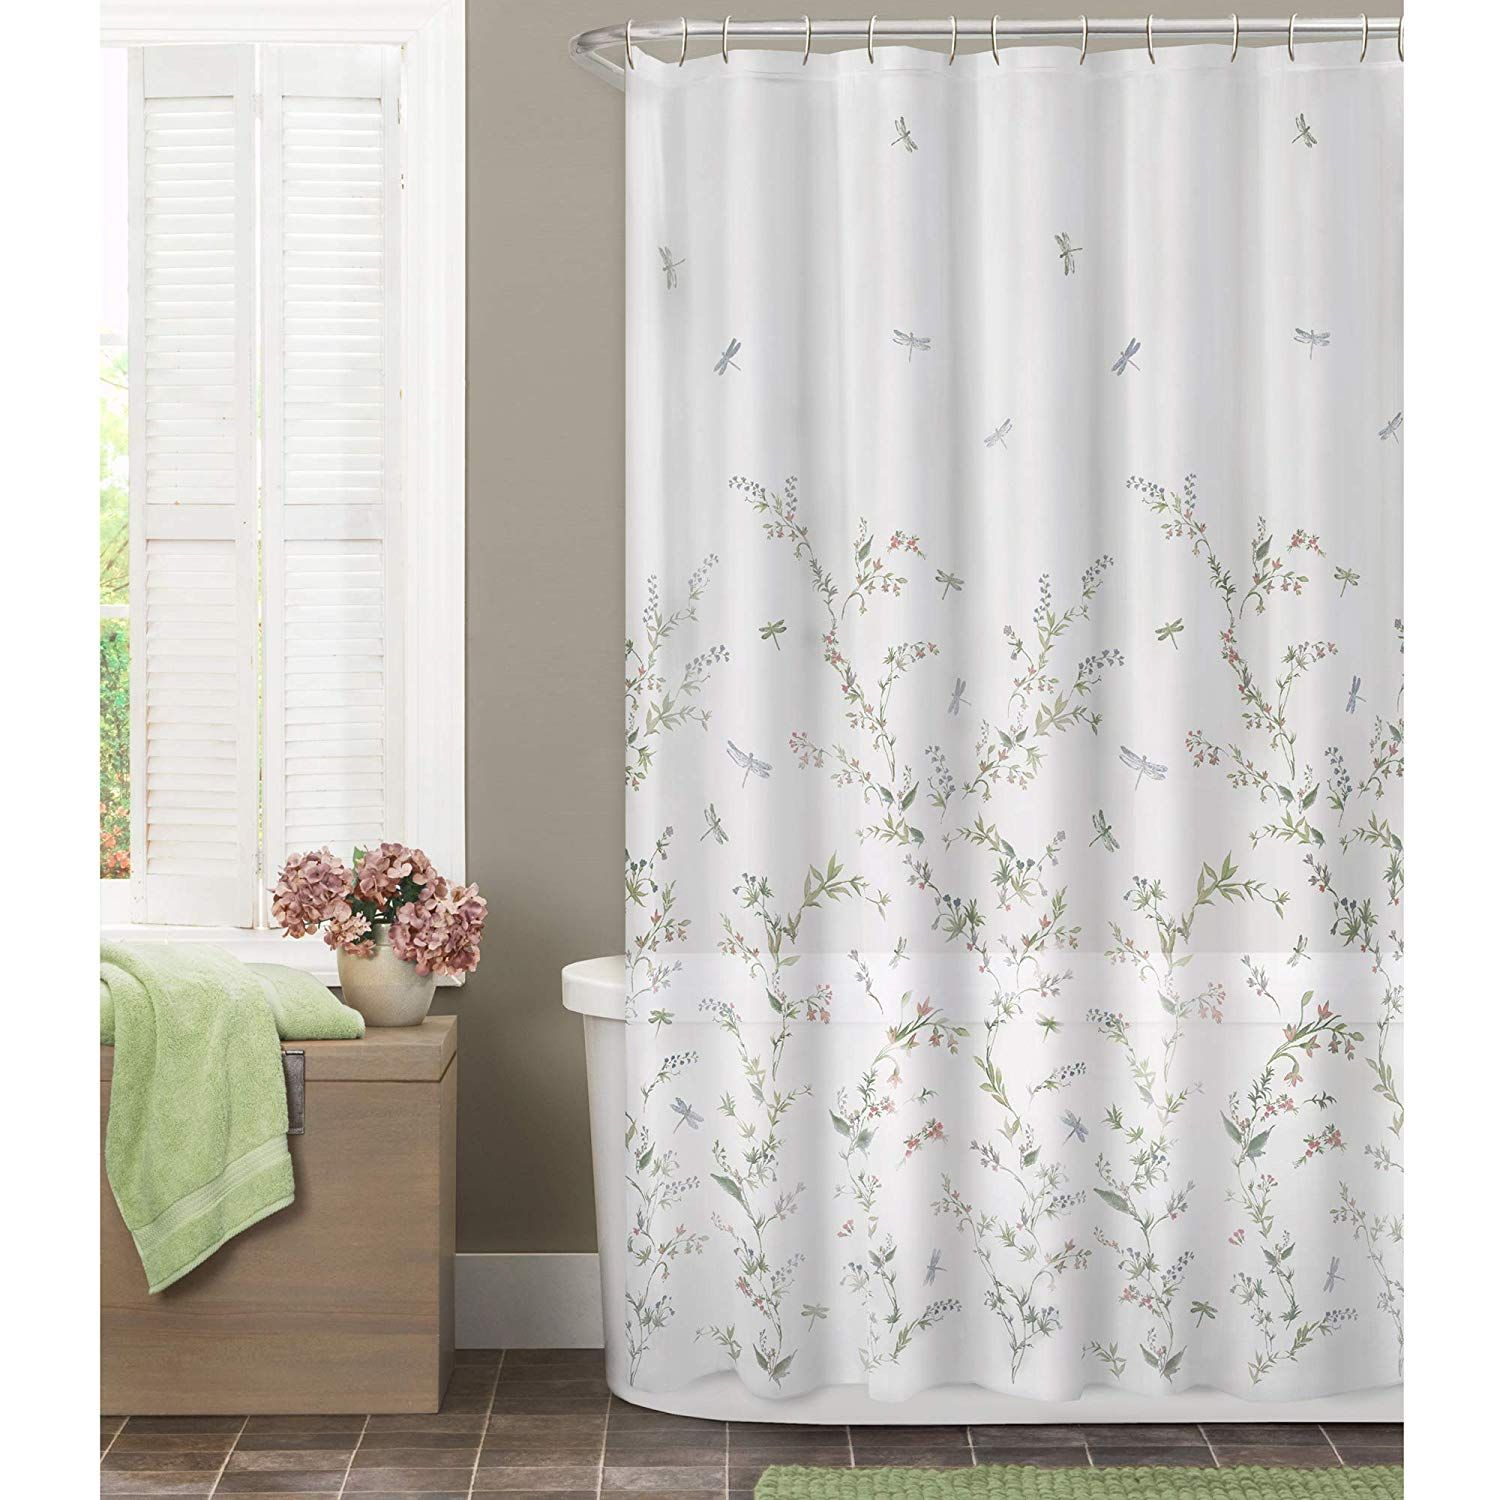 Maytex Dragonfly Garden Semi Sheer Fabric Shower Curtain With Images Fabric Shower Curtains Floral Shower Curtains Curtains